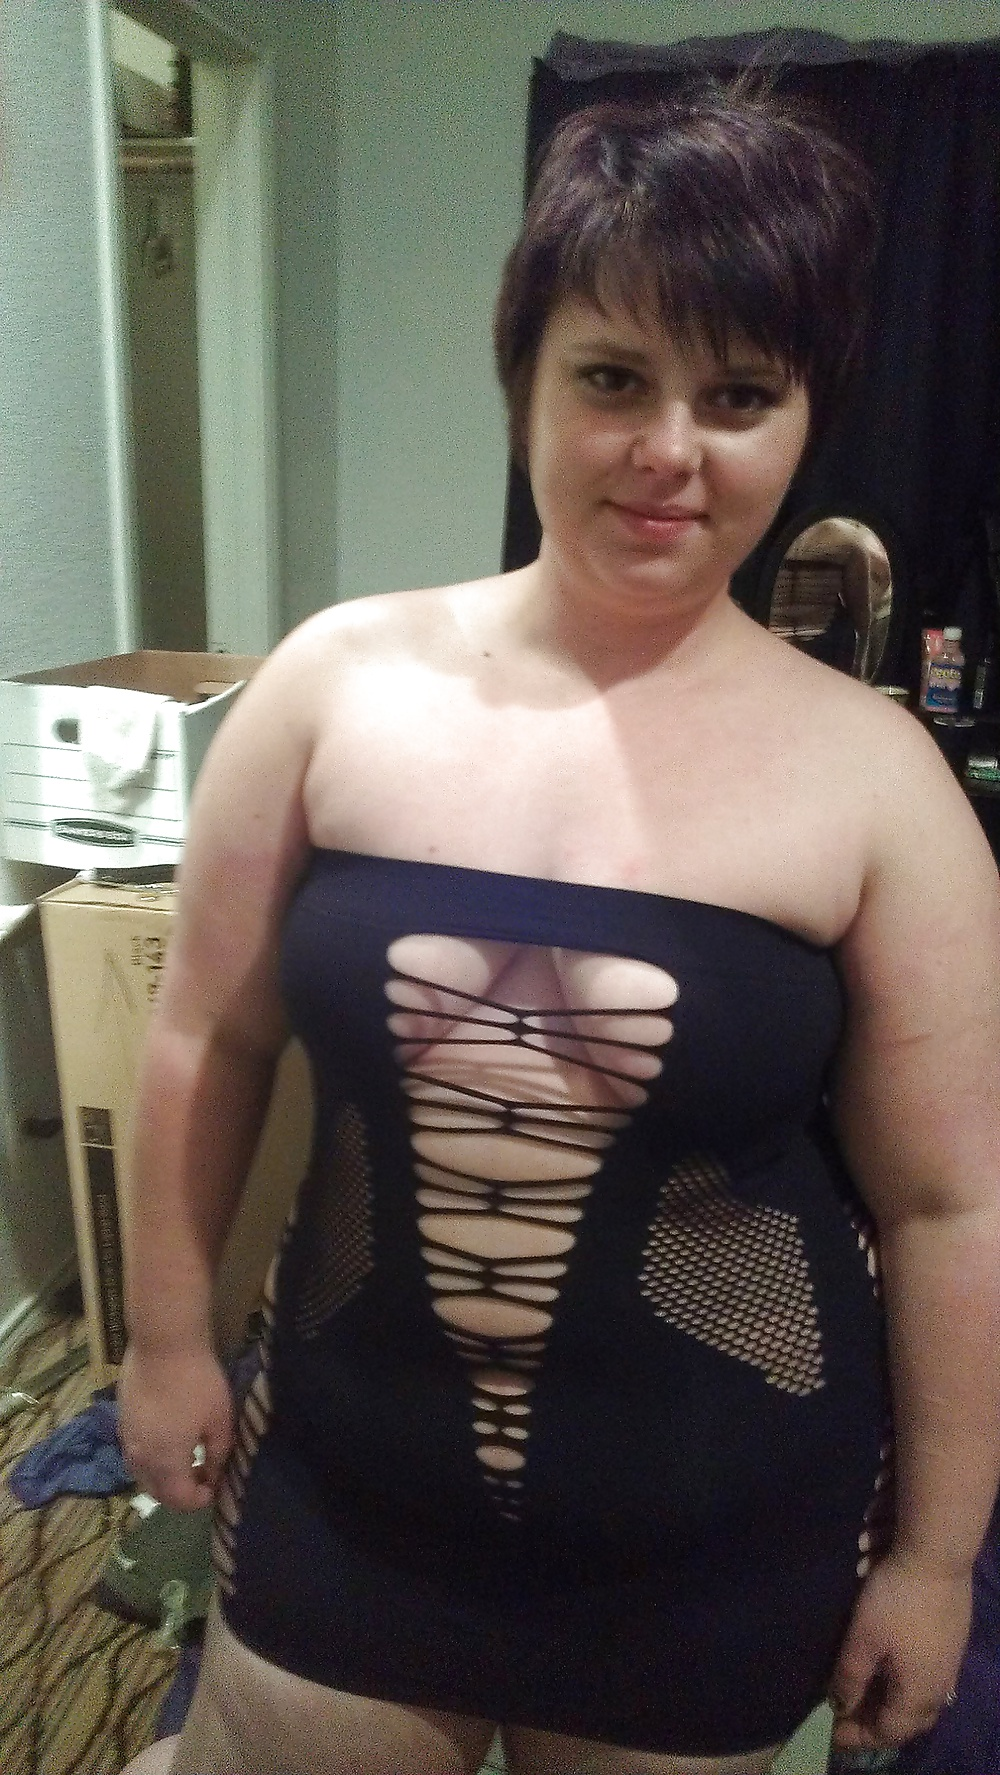 Sex with my wife pics